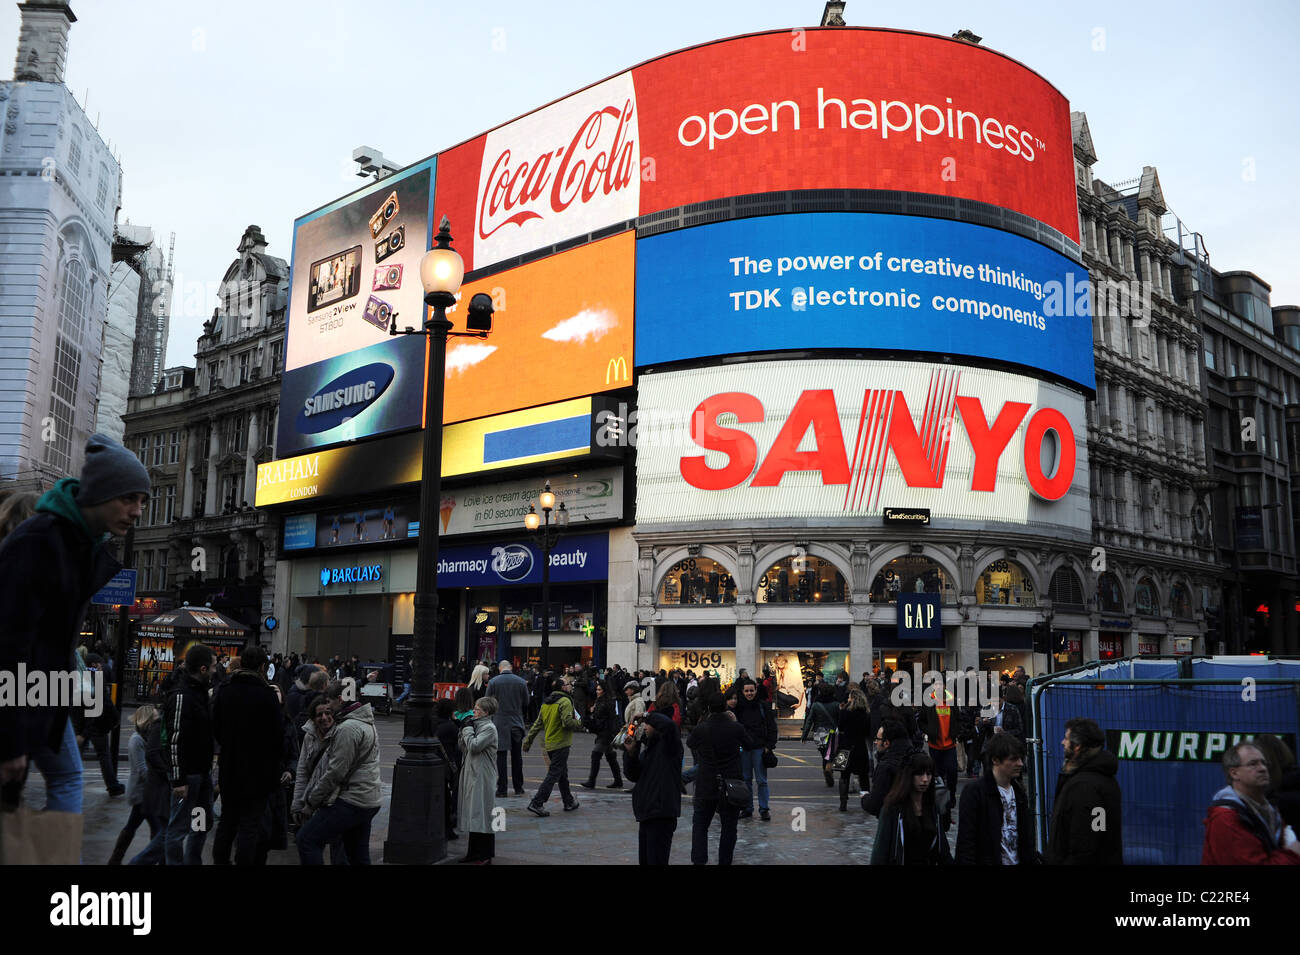 Tourists at Piccadilly Circus, London - Stock Image